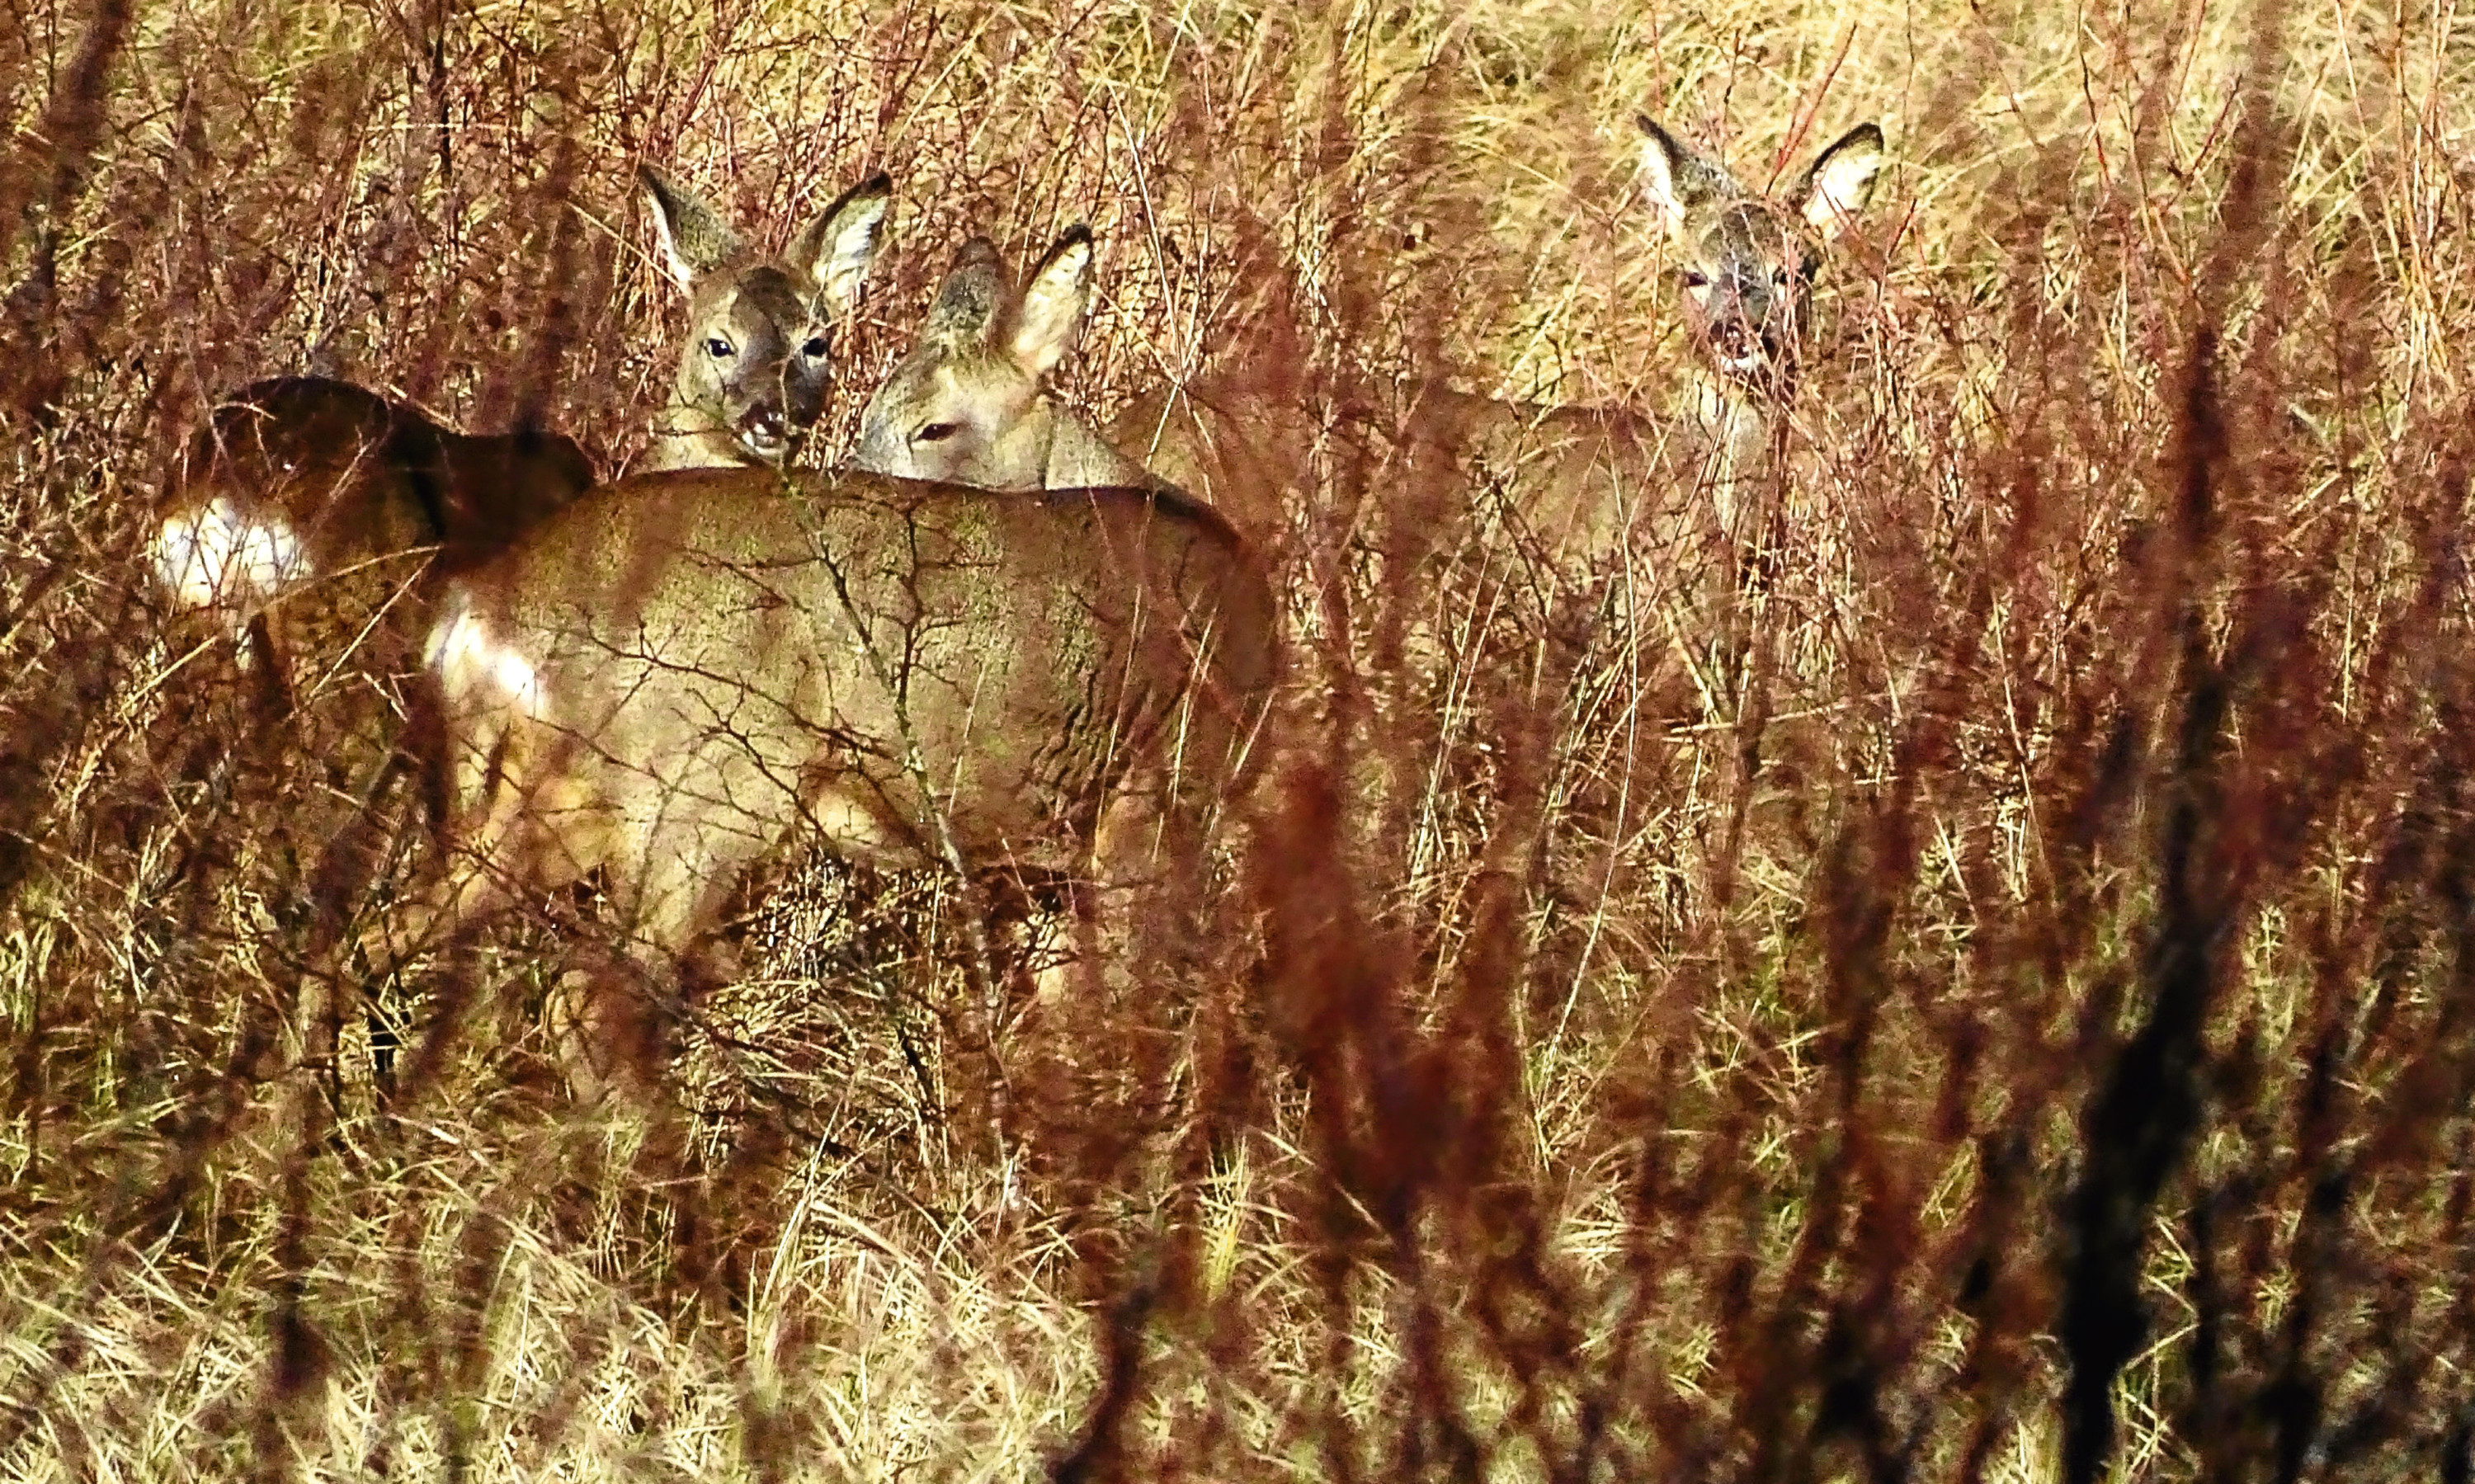 The three roe deer Jim saw when he was out and about on the Insh Marshes in the Cairngorms.